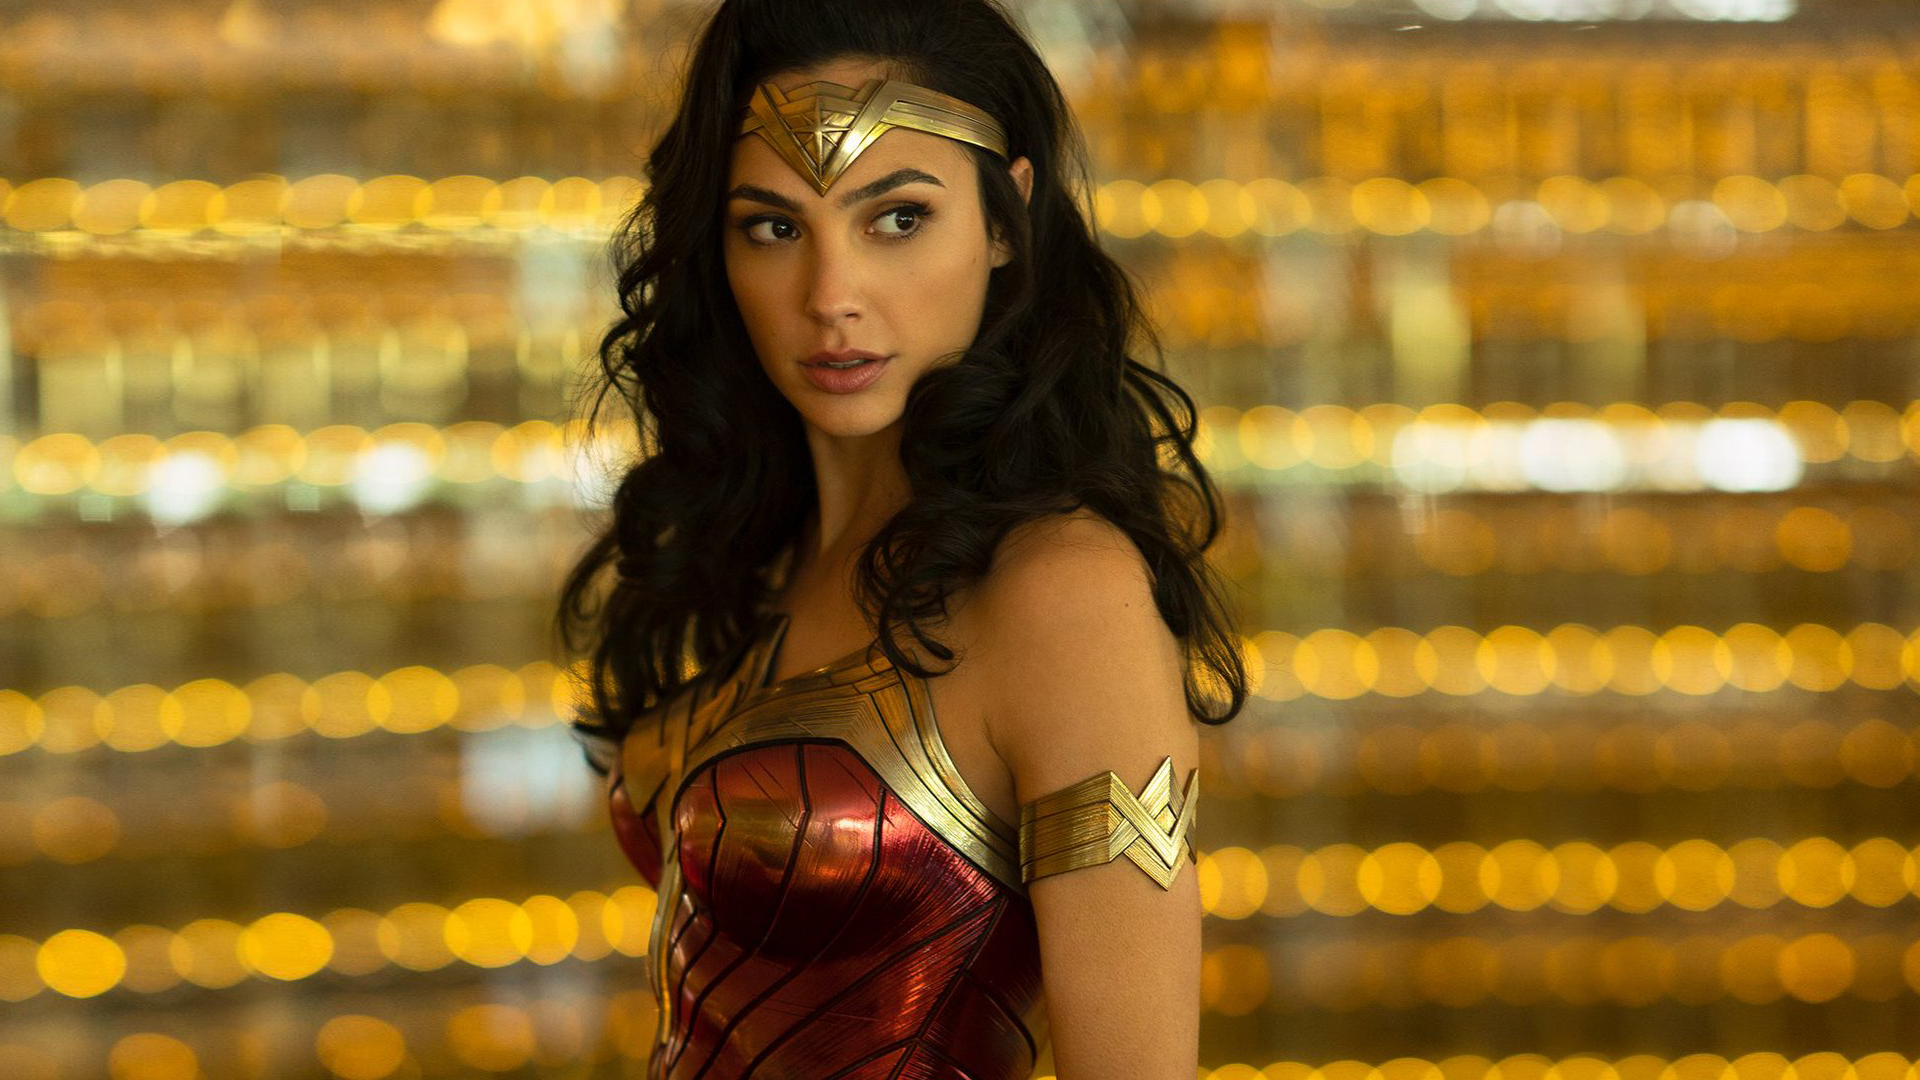 Critique « Wonder Woman 1984 » (2020) : Un pari risqué !